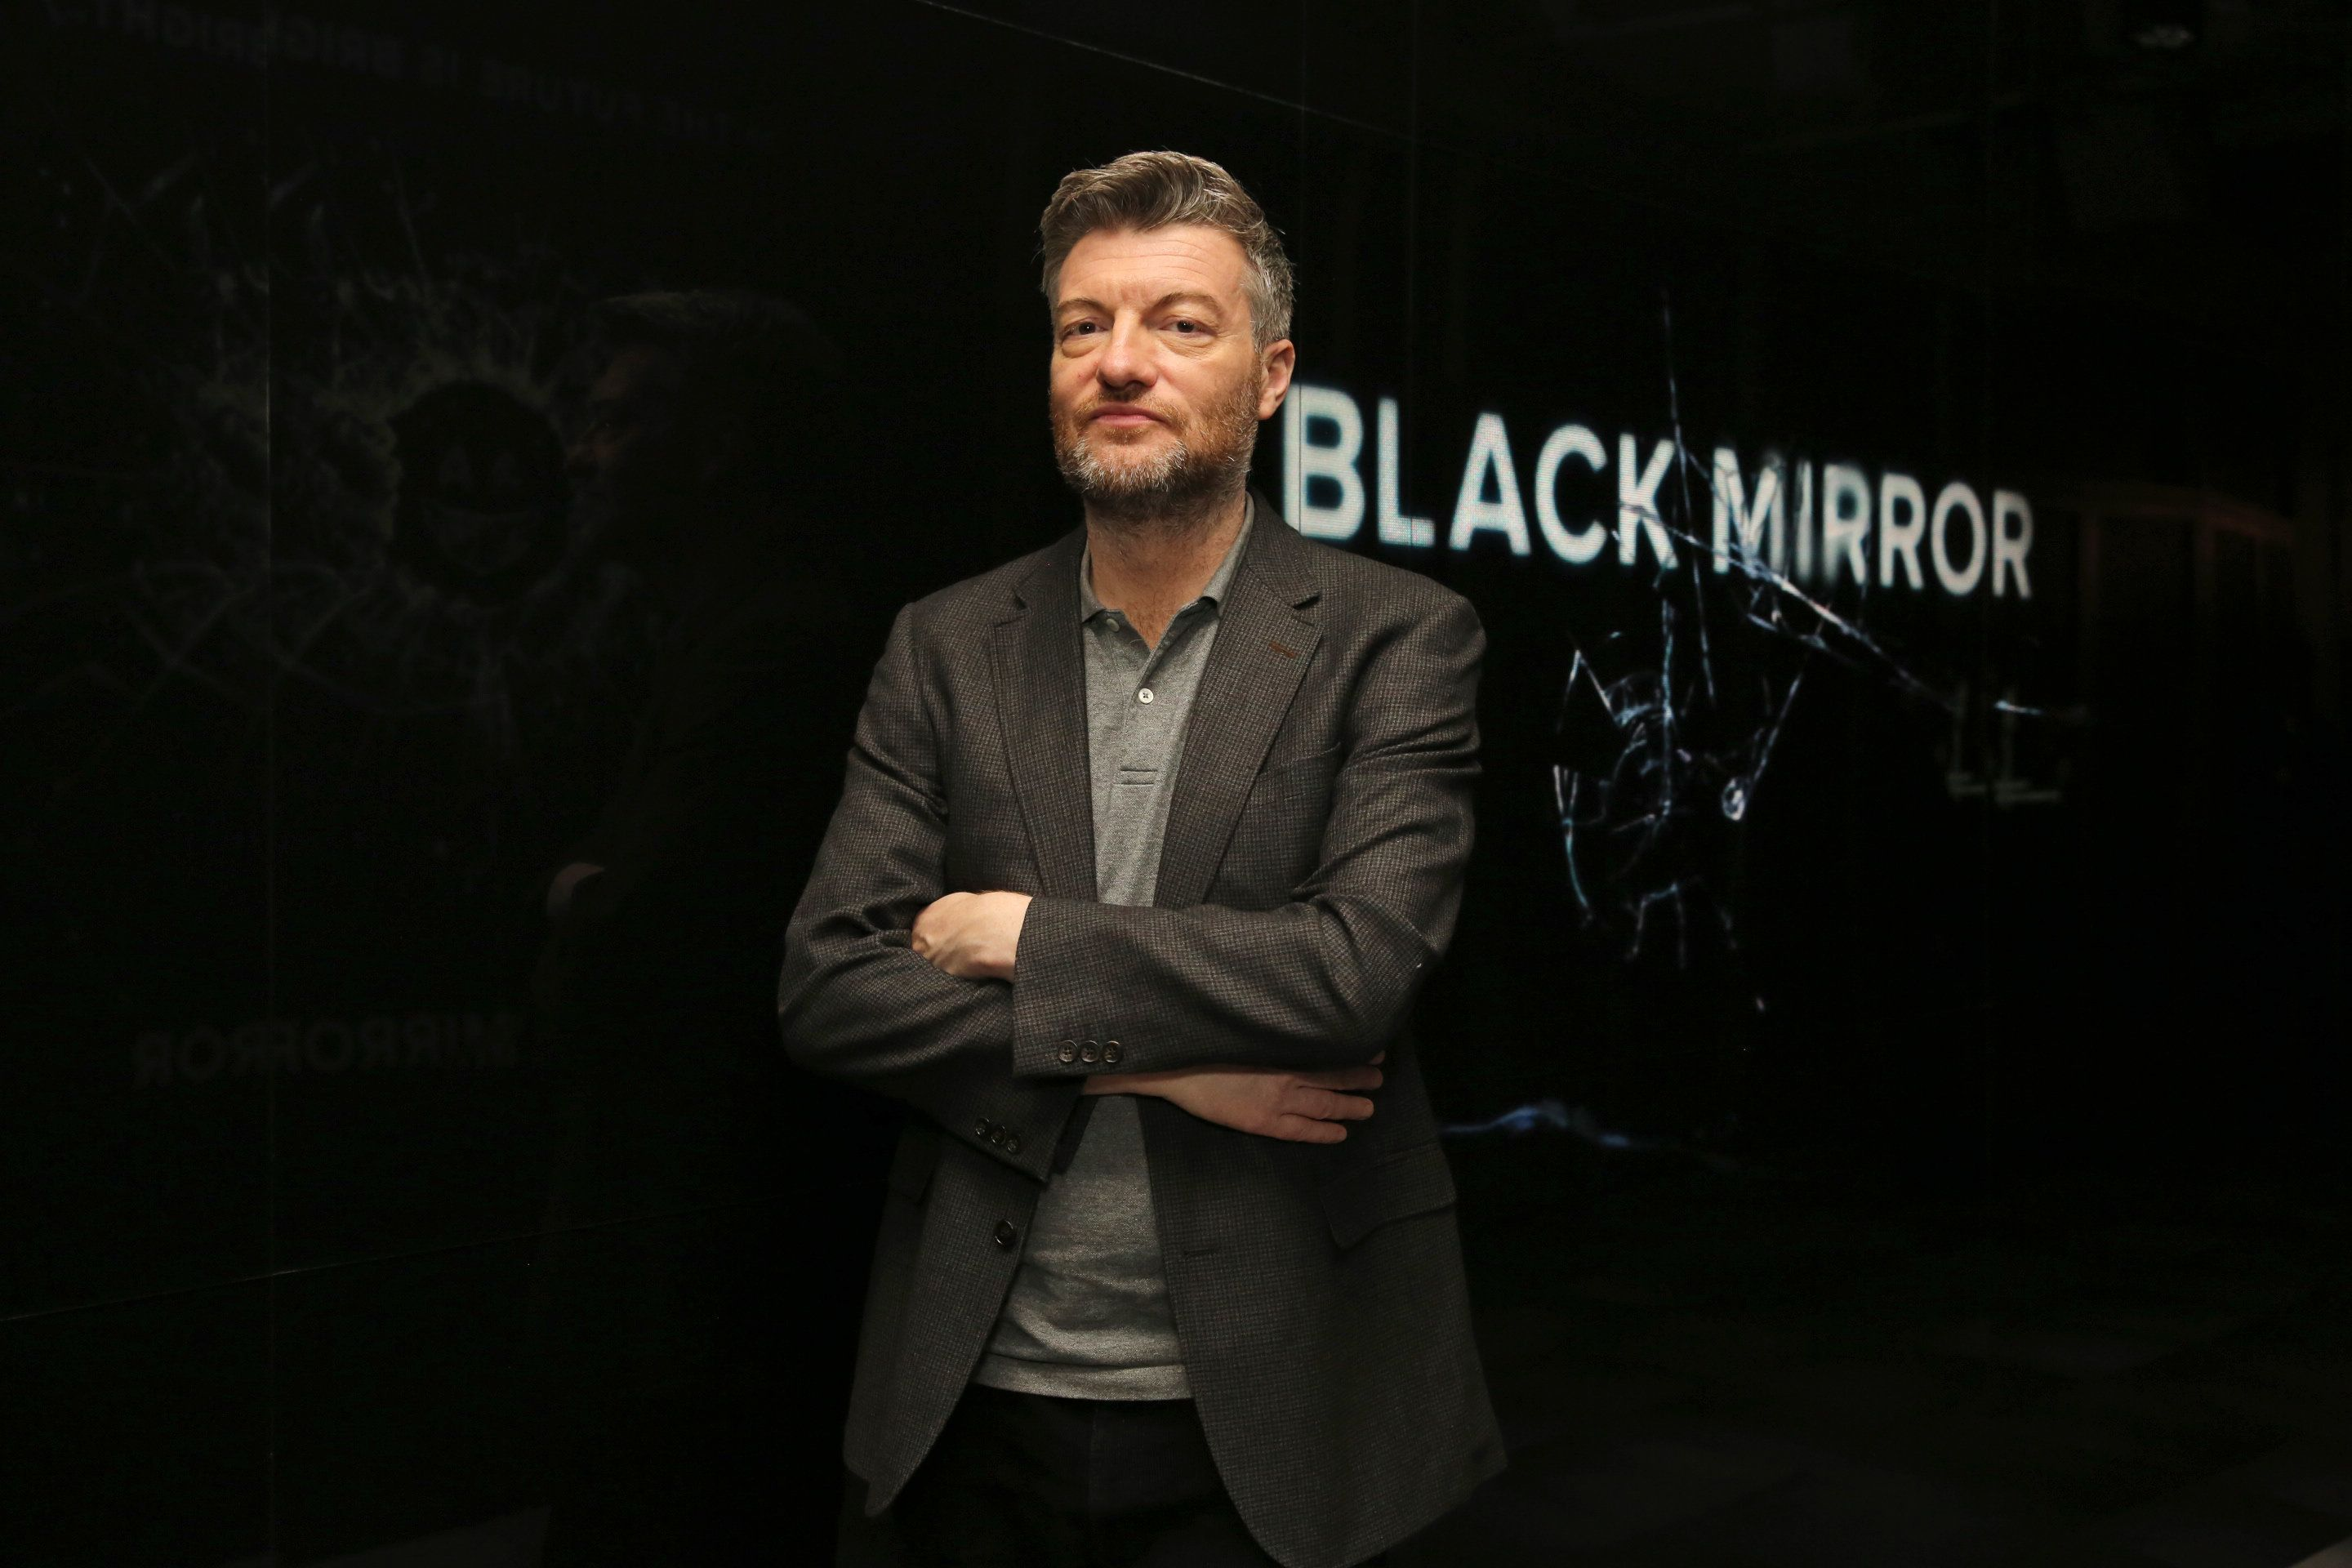 Charlie Brooker On Underrated 'Black Mirror' Episodes, Unnerving New Tech And 'Love